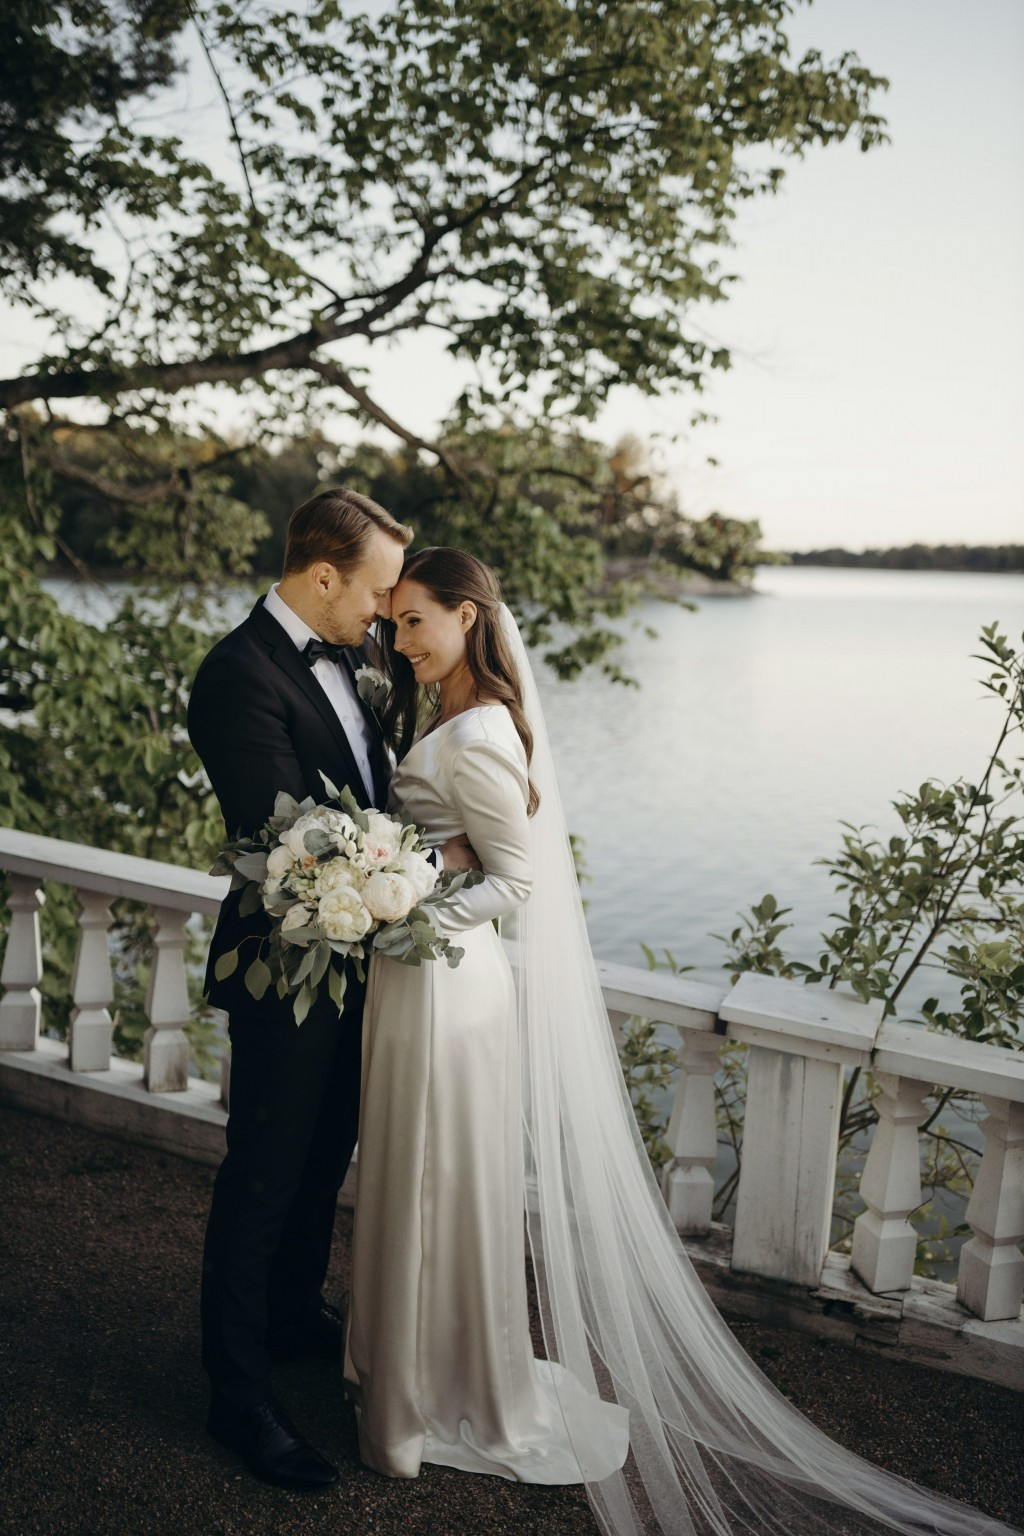 In this handout photo provided by the Finnish Prime Minister's Office on Sunday, Aug. 2, 2020, Finnish Prime Minister Sanna Marin and her new husband ...